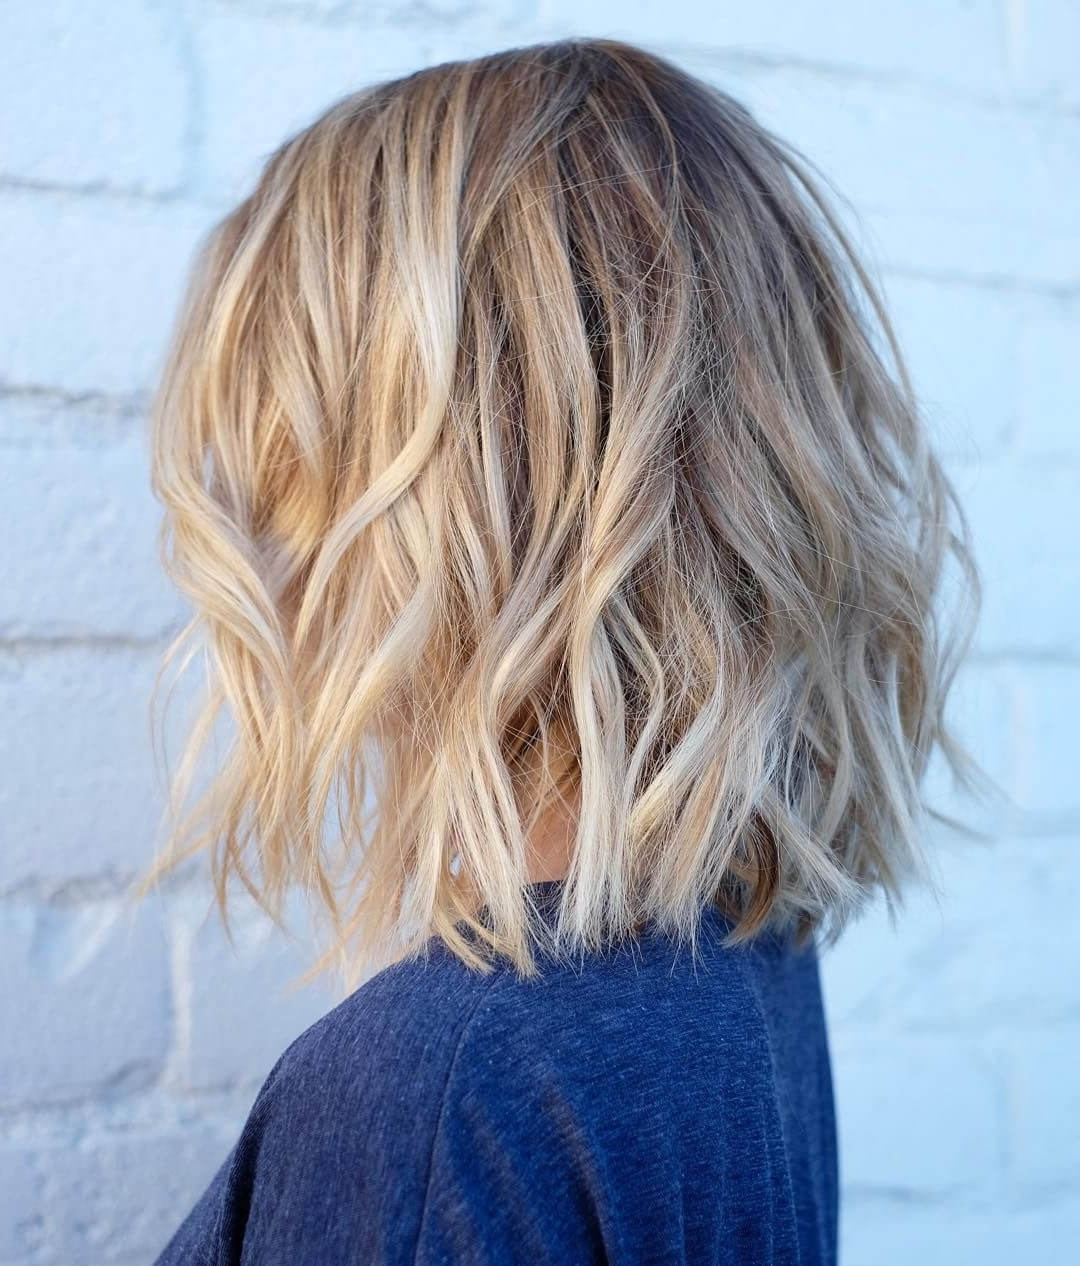 50 Fresh Short Blonde Hair Ideas To Update Your Style In 2018 Within Well Known Dark Roots Blonde Hairstyles With Honey Highlights (View 8 of 20)